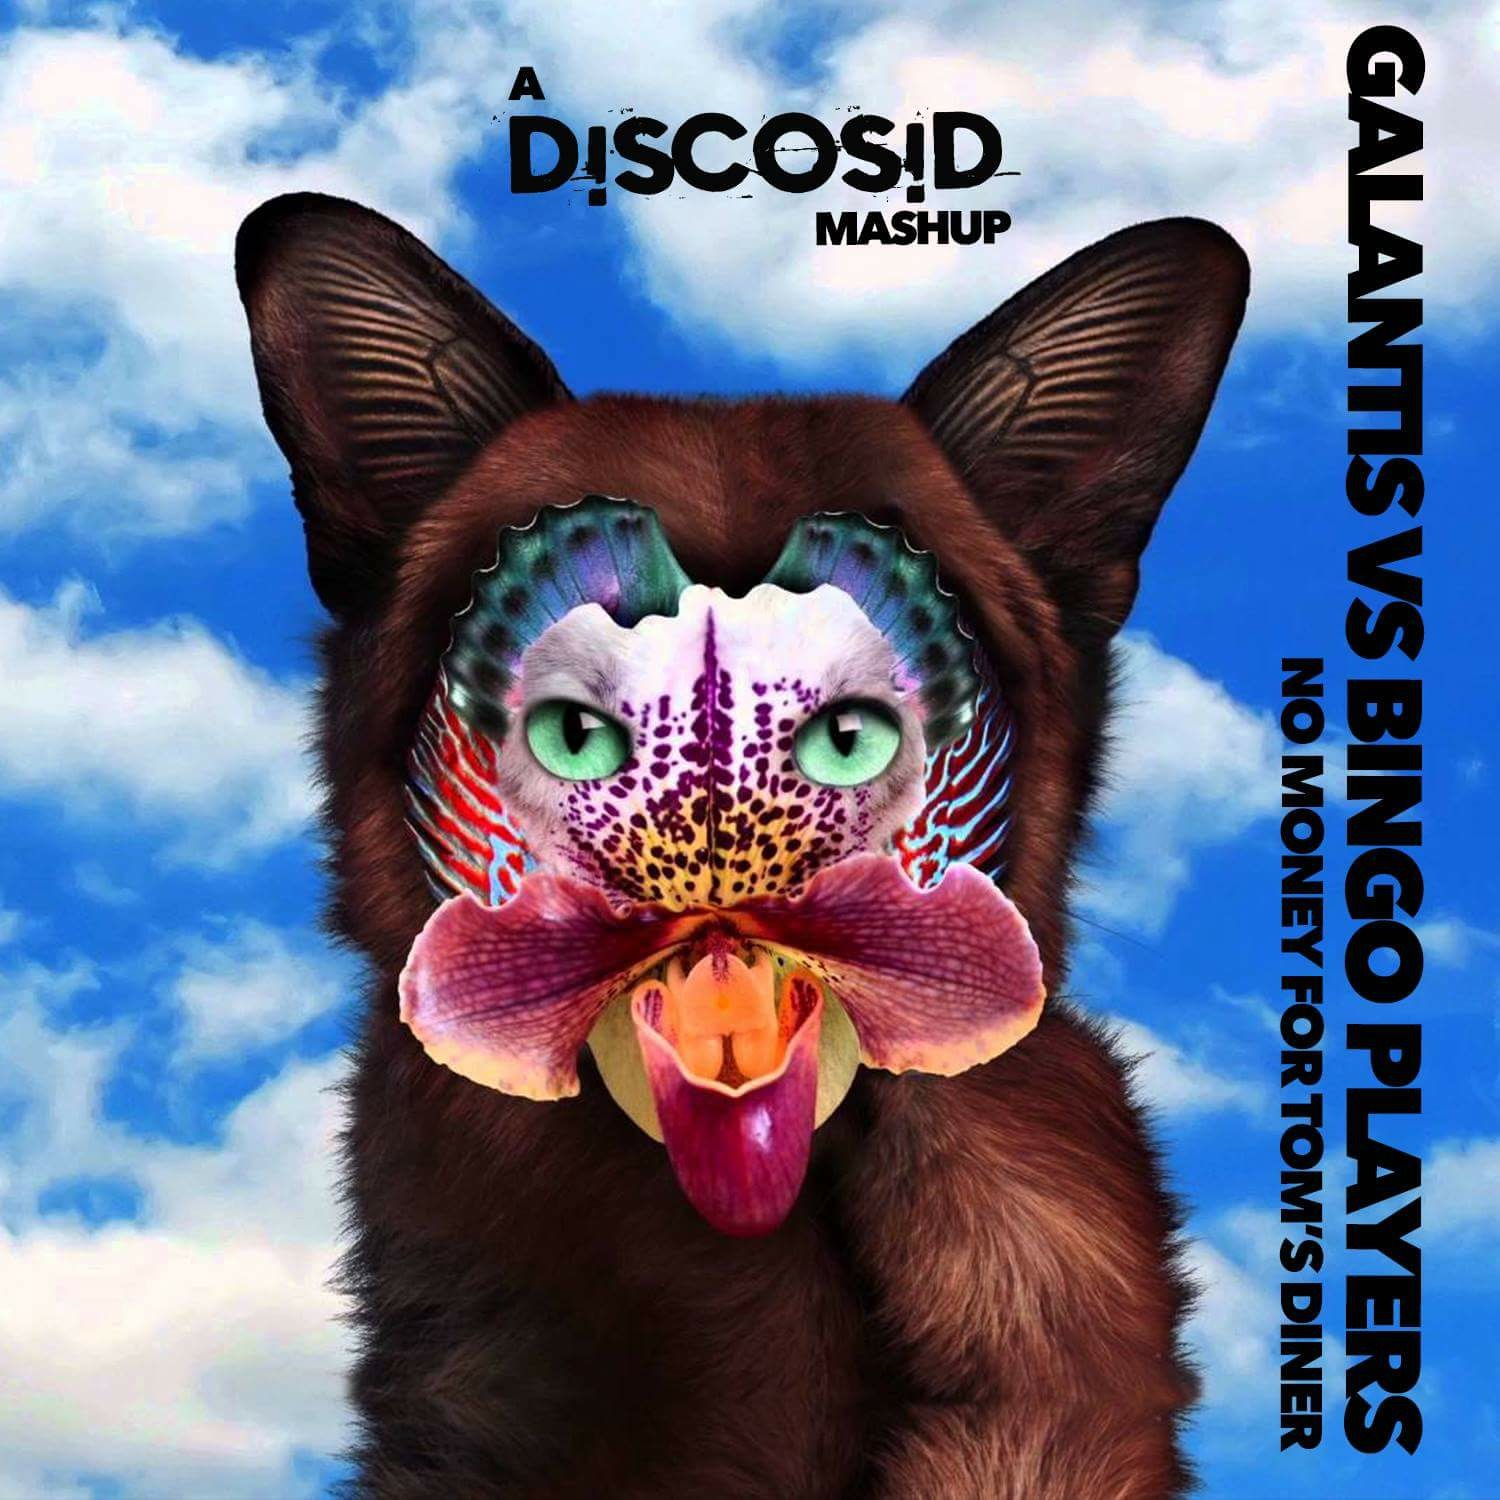 Galantis Vs Bingo Players - No Money For Tom's Diner (Discosid Mashup)